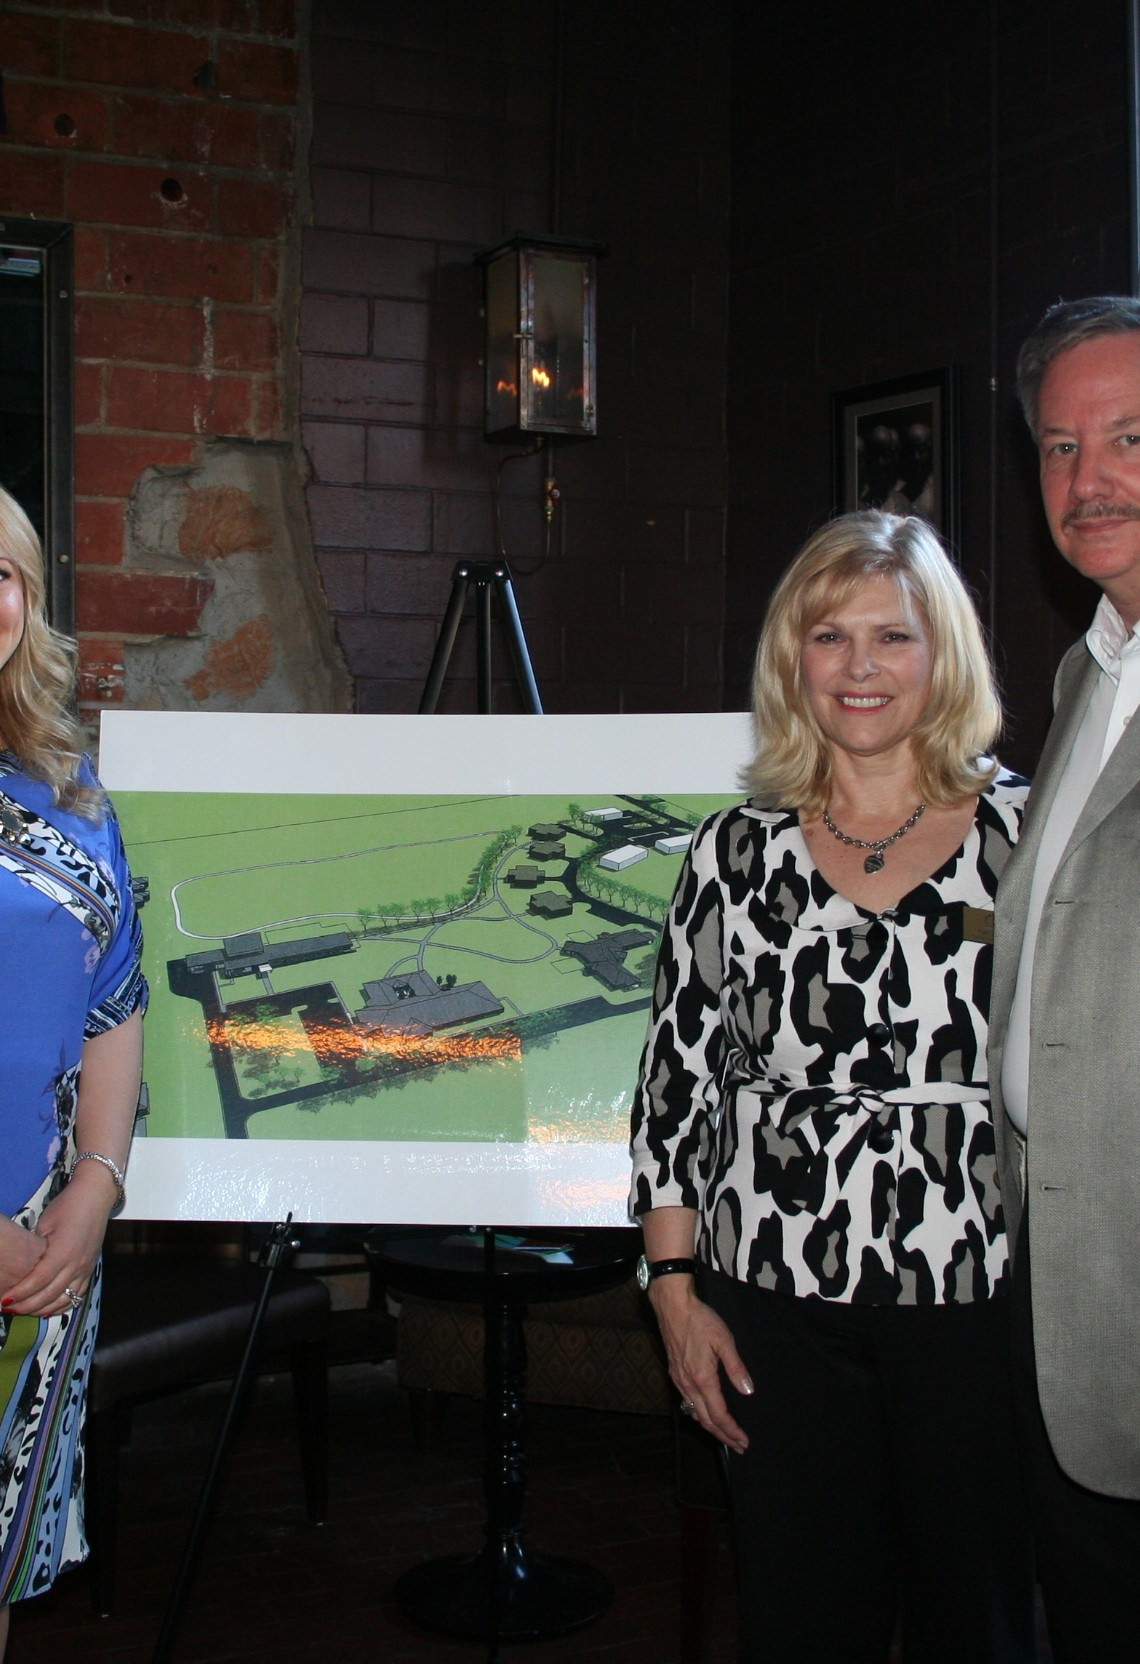 Youth Bridge Building Brighter Futures Campaign Receives $300,000 Gift from Willard and Pat Walker Charitable Foundation